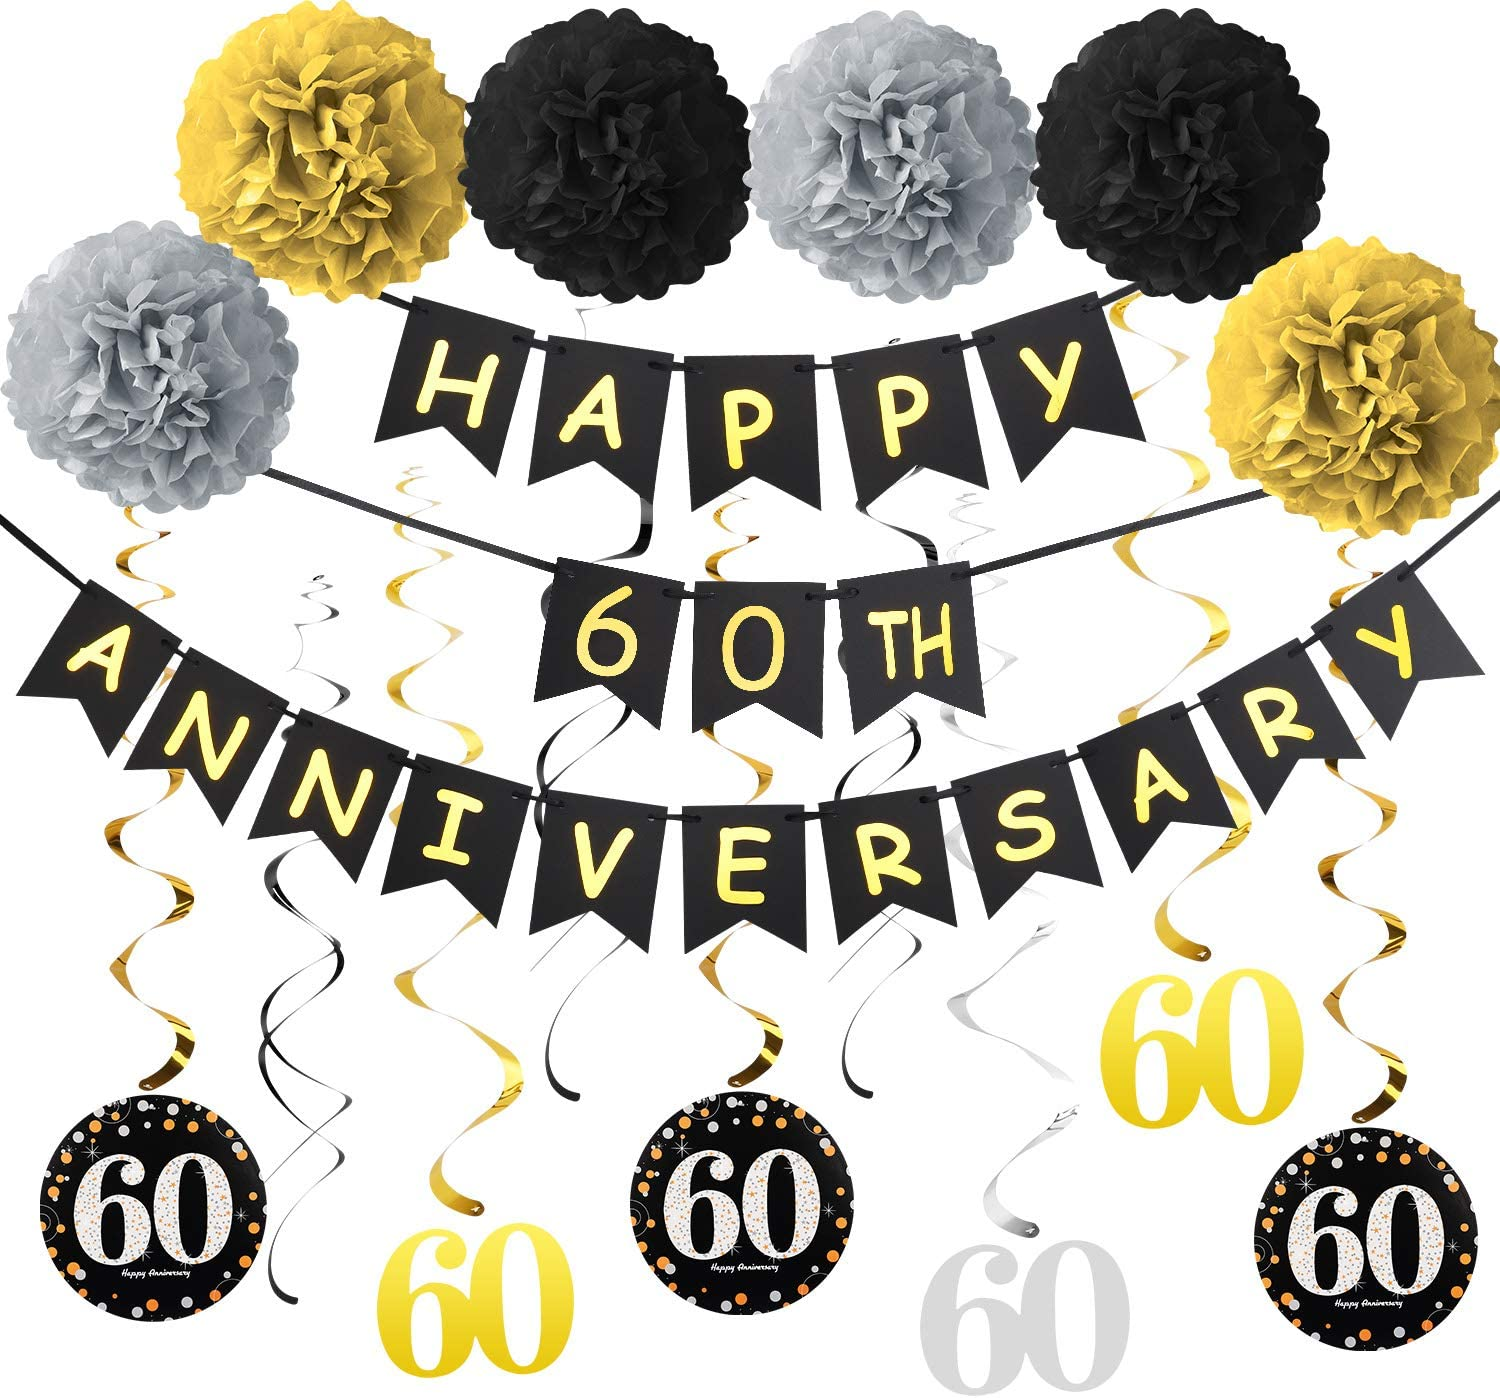 60th Anniversary Decorations Supplies Kit - Gold Glitter Happy 60th Anniversary Banner, 9Pcs Sparkling 60 Hanging Swirl, 6Pcs Poms - for 60th Wedding Anniversary Party Decorations